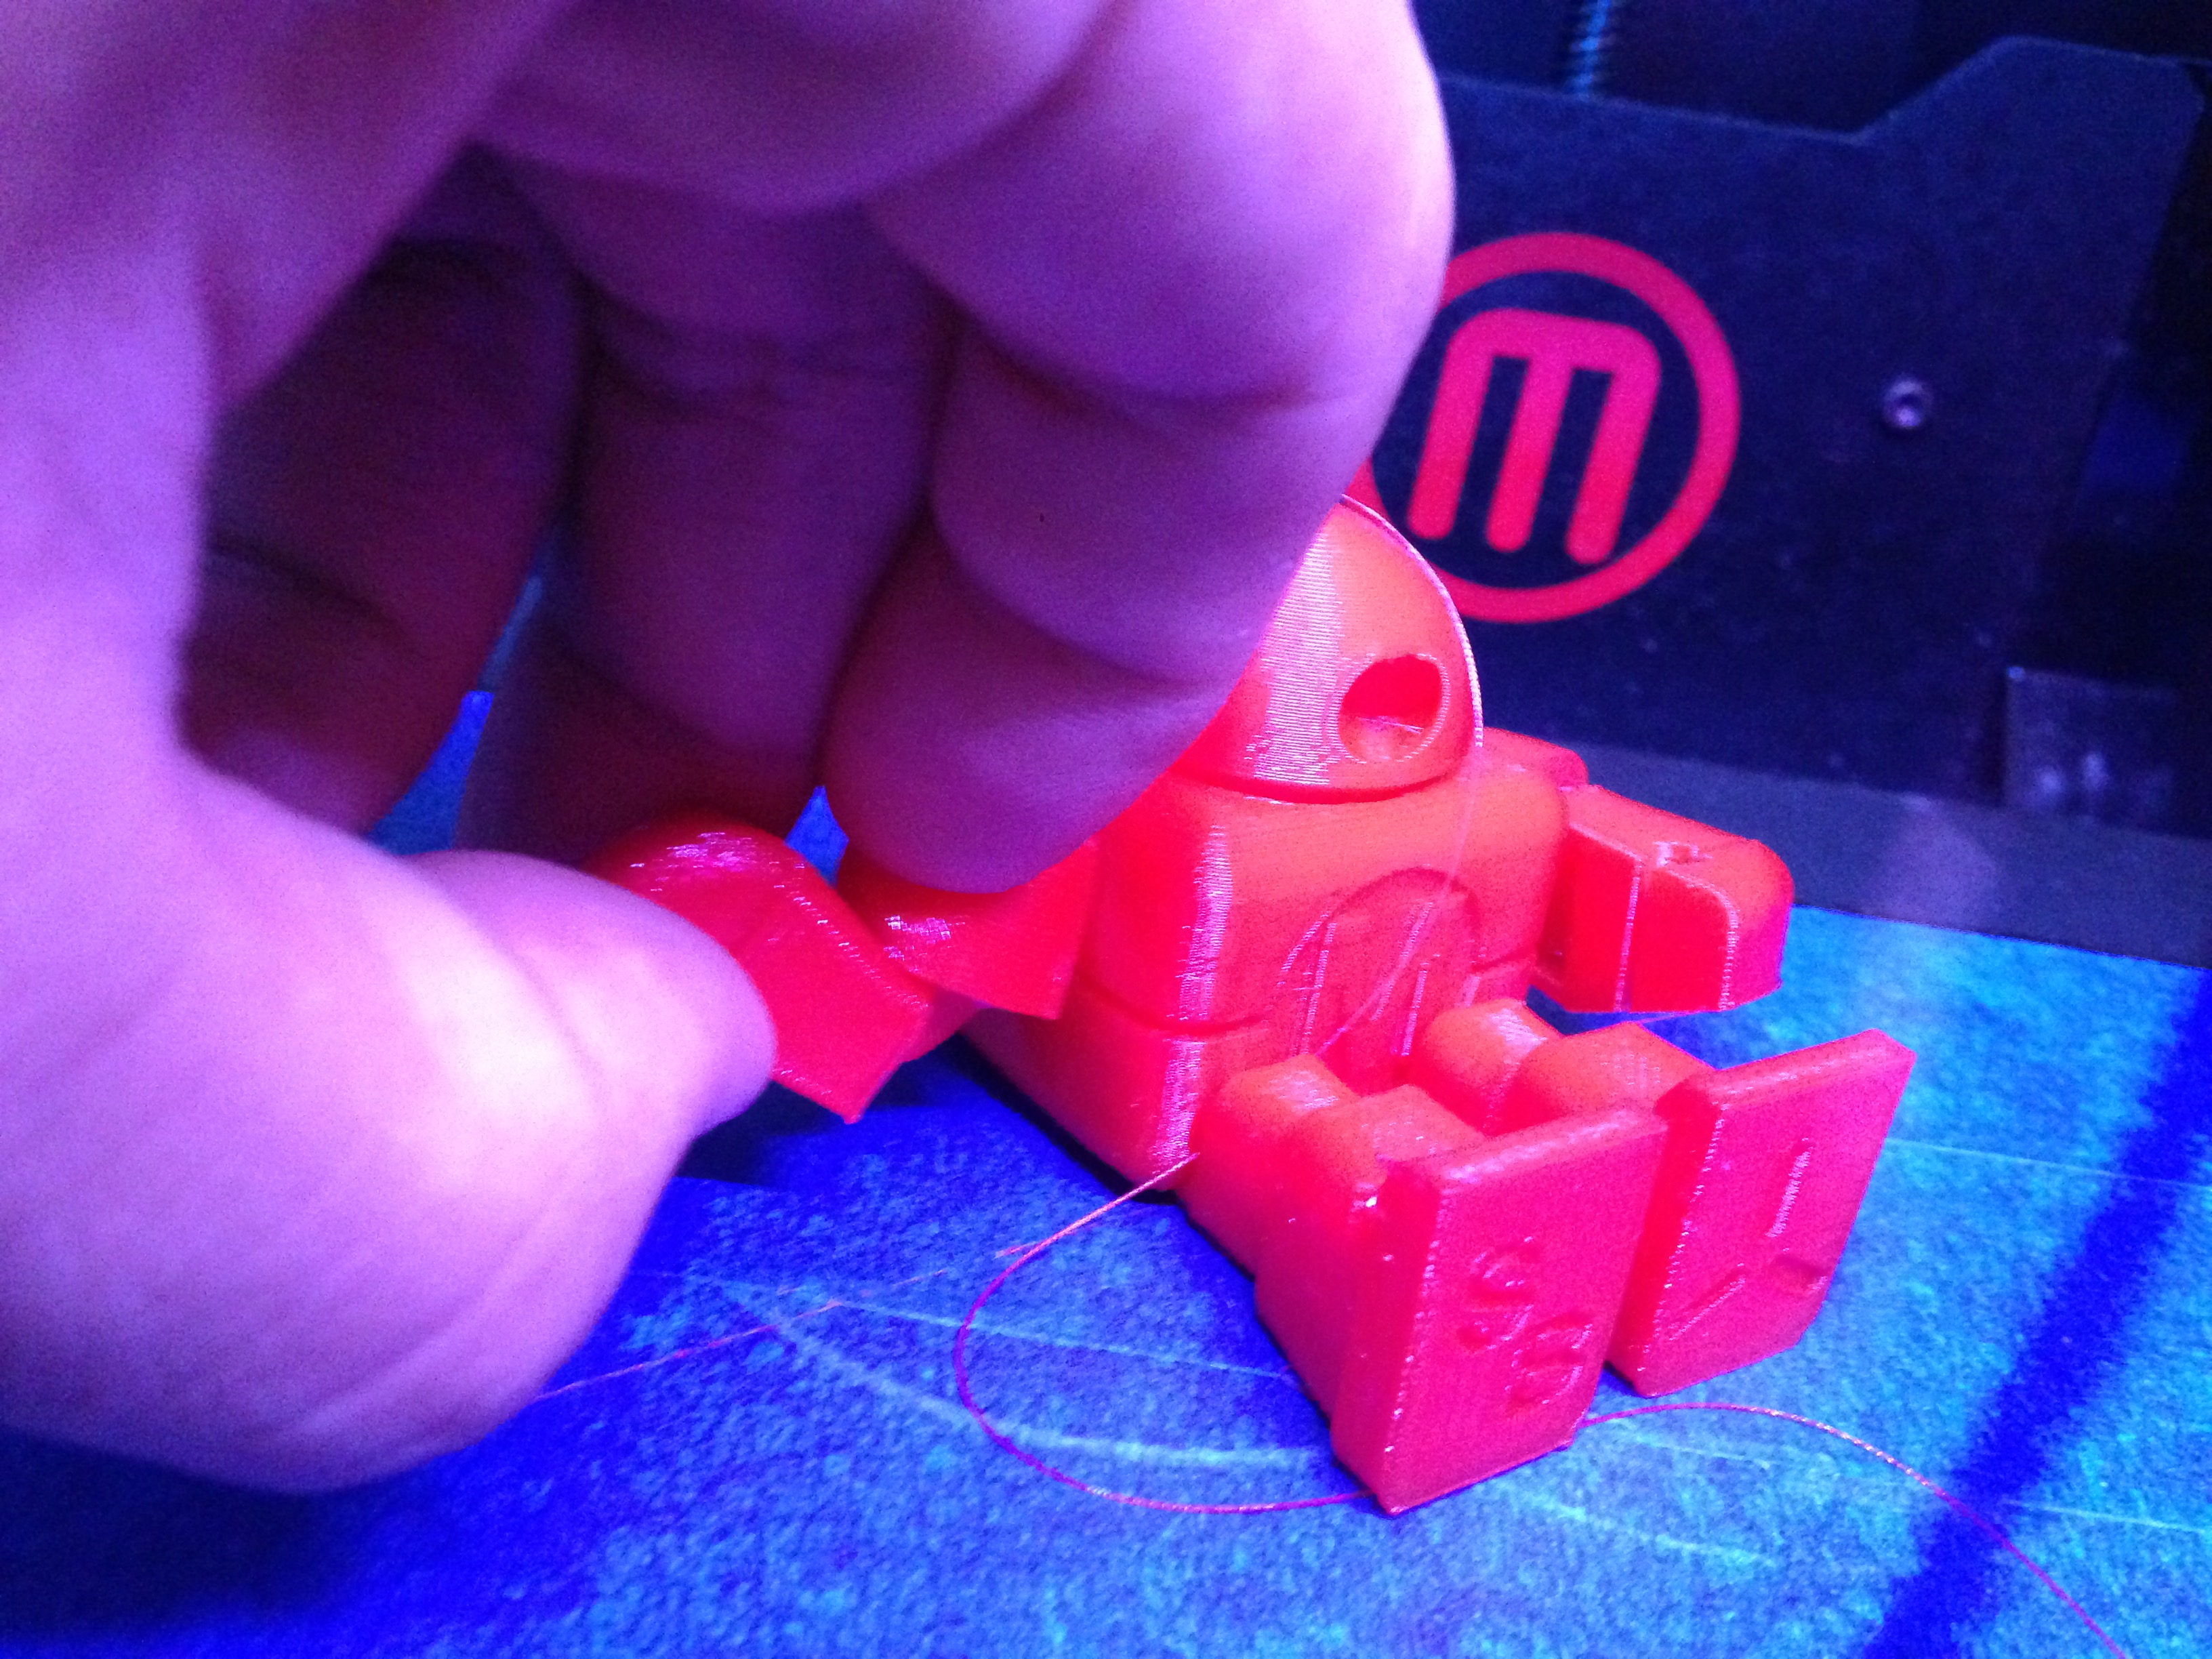 Master of ninja flex on Makerbot Replicator 2 and 2x - 3D